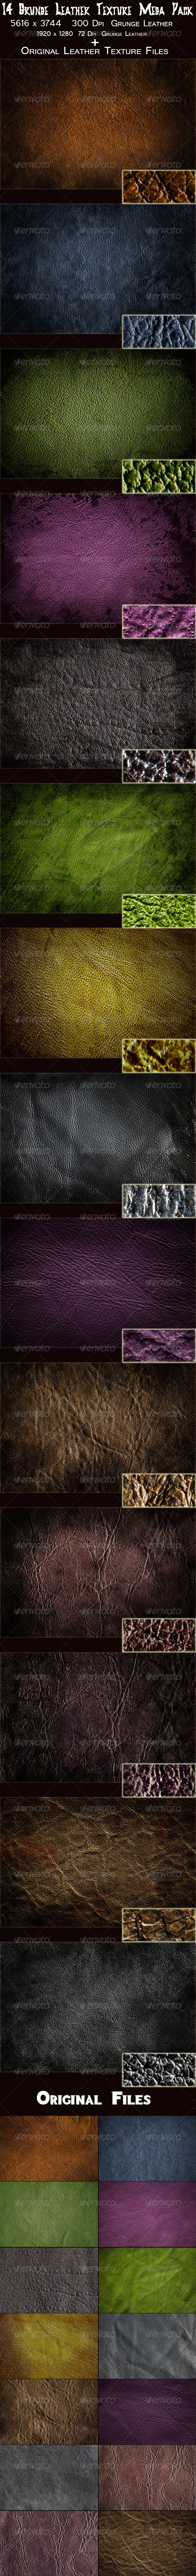 GraphicRiver 14 Grunge Leather Texture Mega Pack 3357360